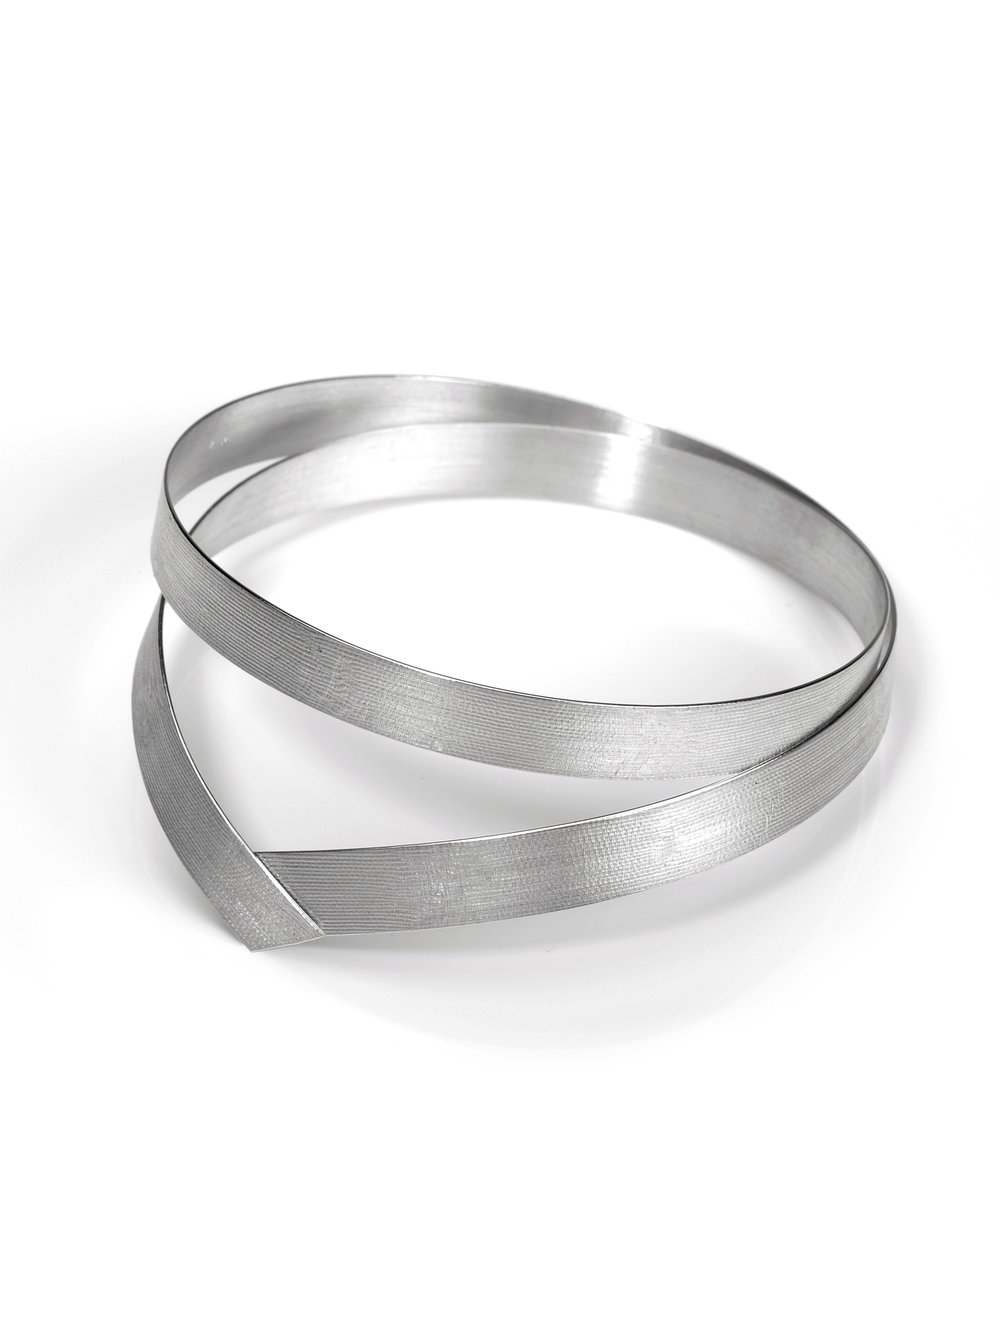 Band-Armreif, doppelt in 925 Silber mit Batiststruktur  Band-bracelet, double in sterling silver with batist structure